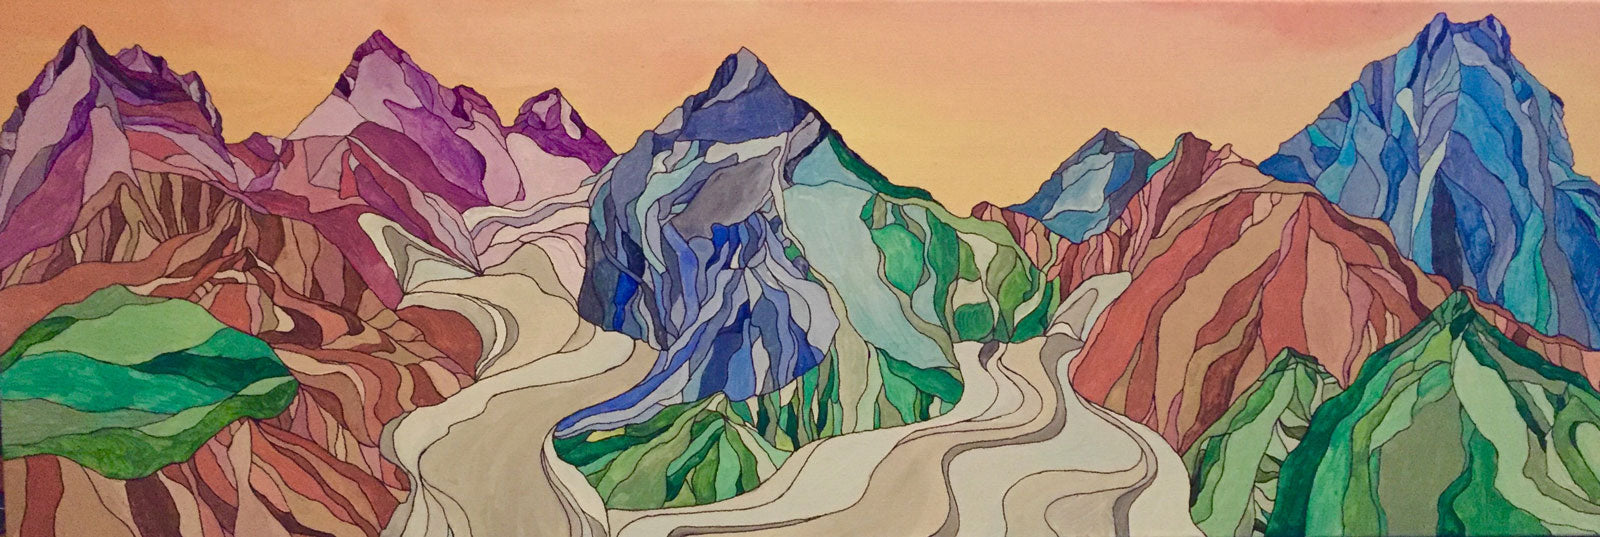 Blackstone and Beloit Glacier | Whittier, AK Acrylic and Ink by Artist Kelli Spencer